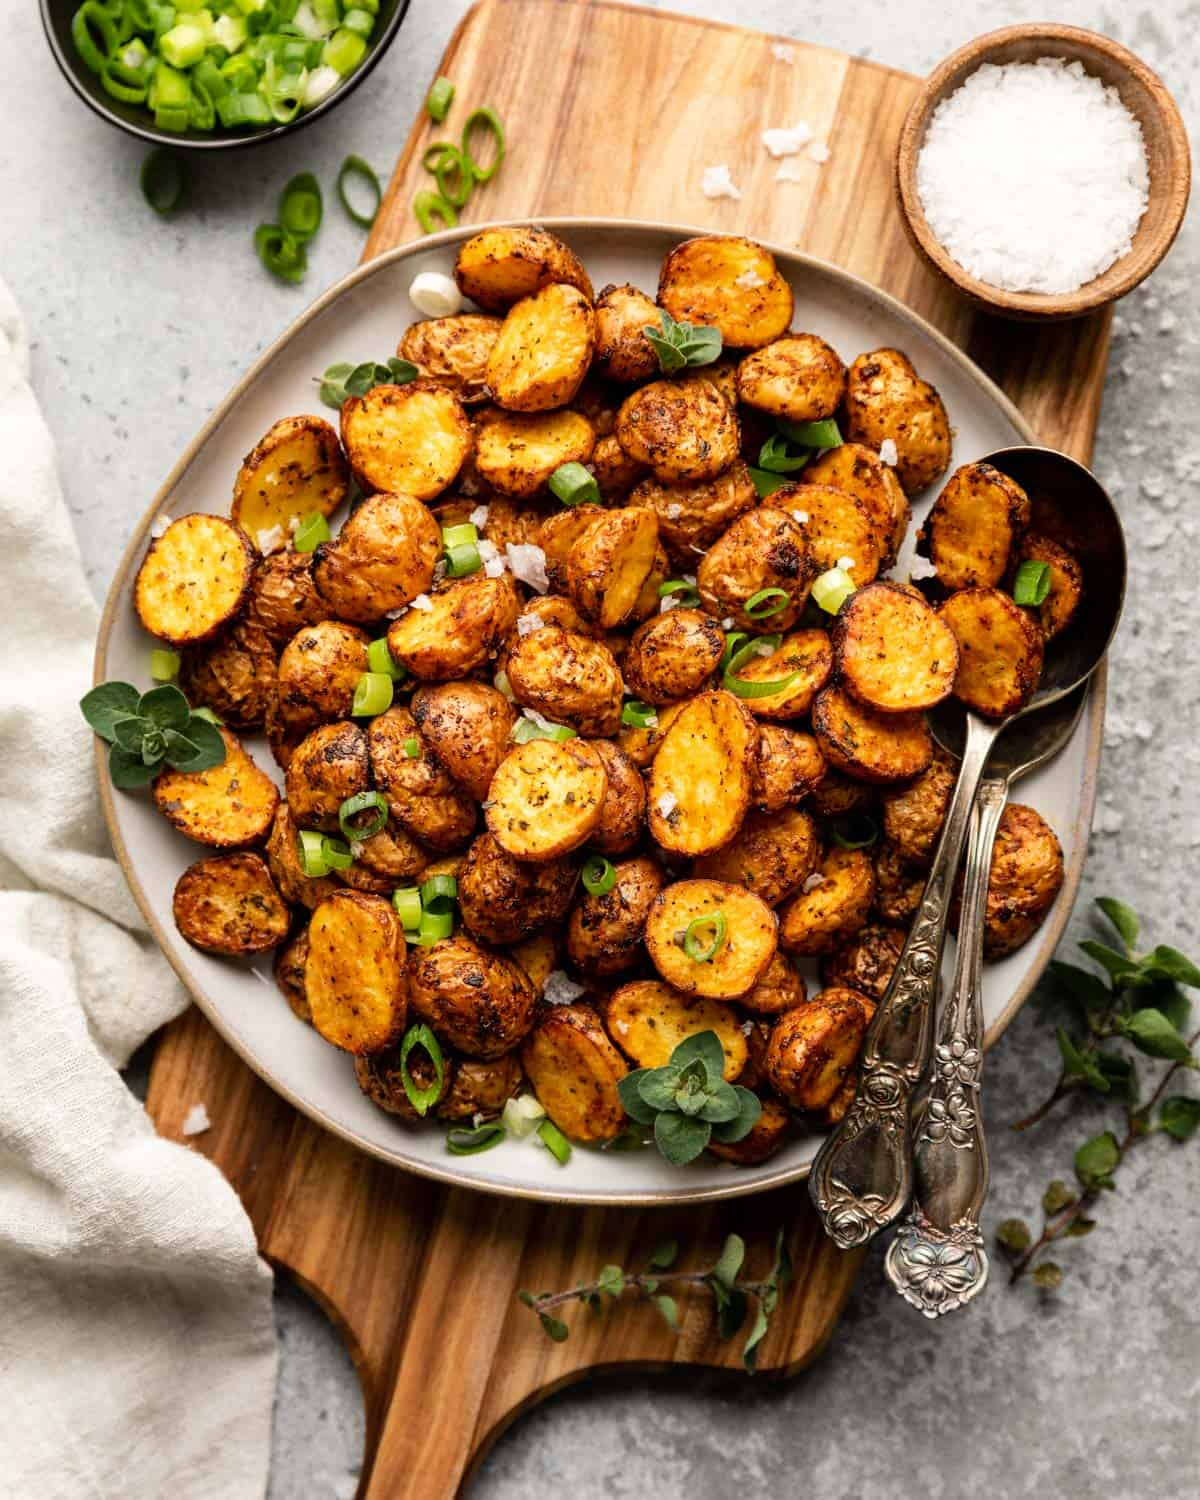 overhead of potatoes garnished with scallions and oregano